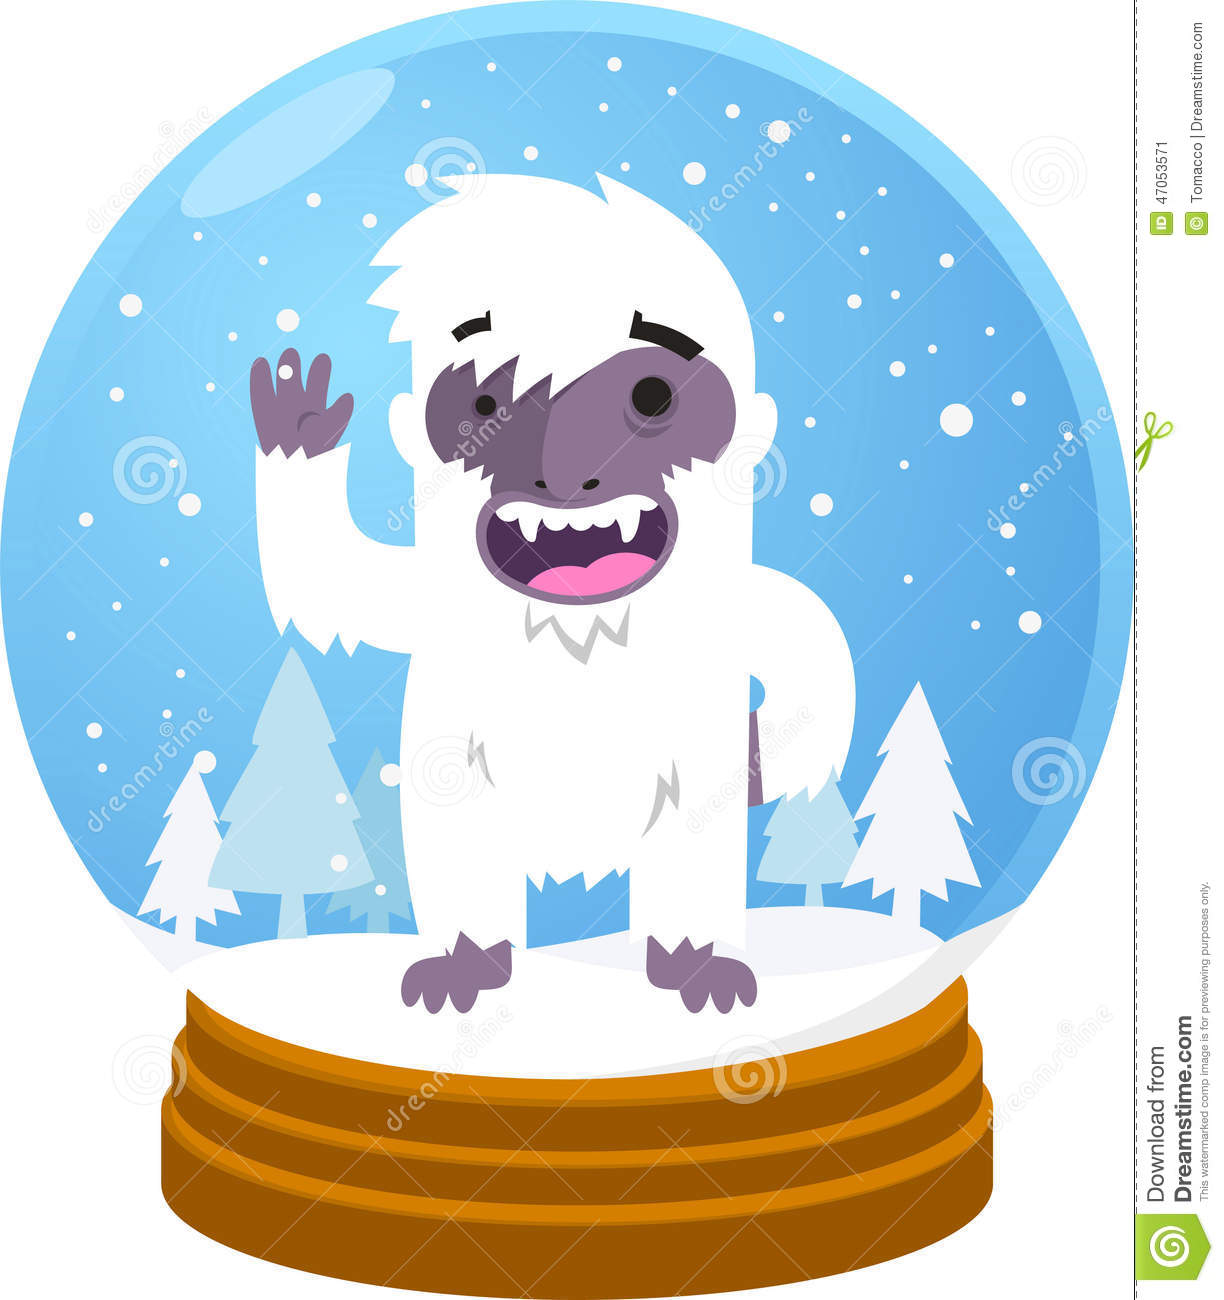 yeti snow globe stock illustration illustration of pets apa clip art citation apa clip art citation